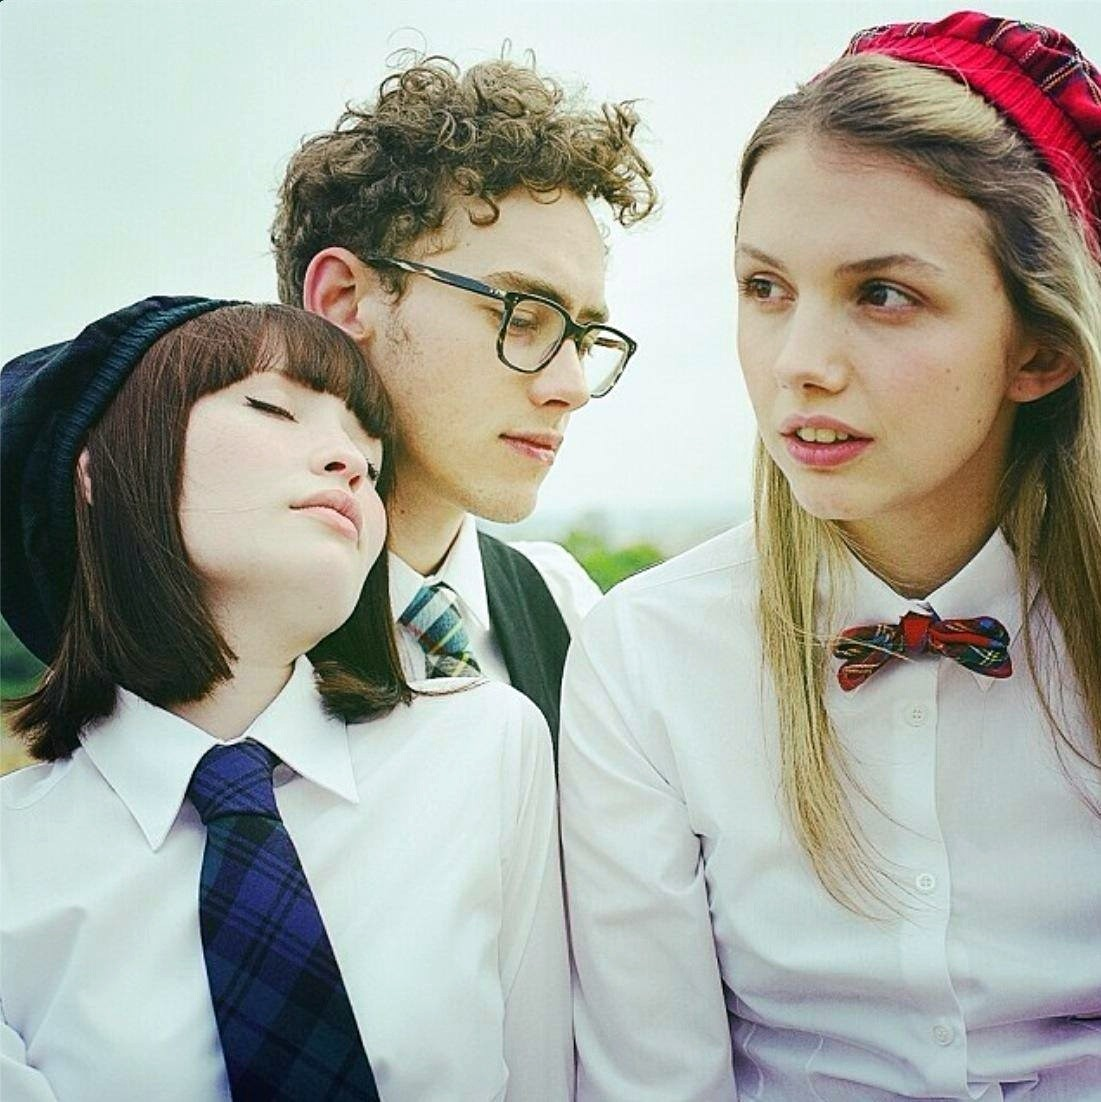 Emily Browning, Olly Alexander and Hannah Murray in Amplify's God Help the Girl (2014)